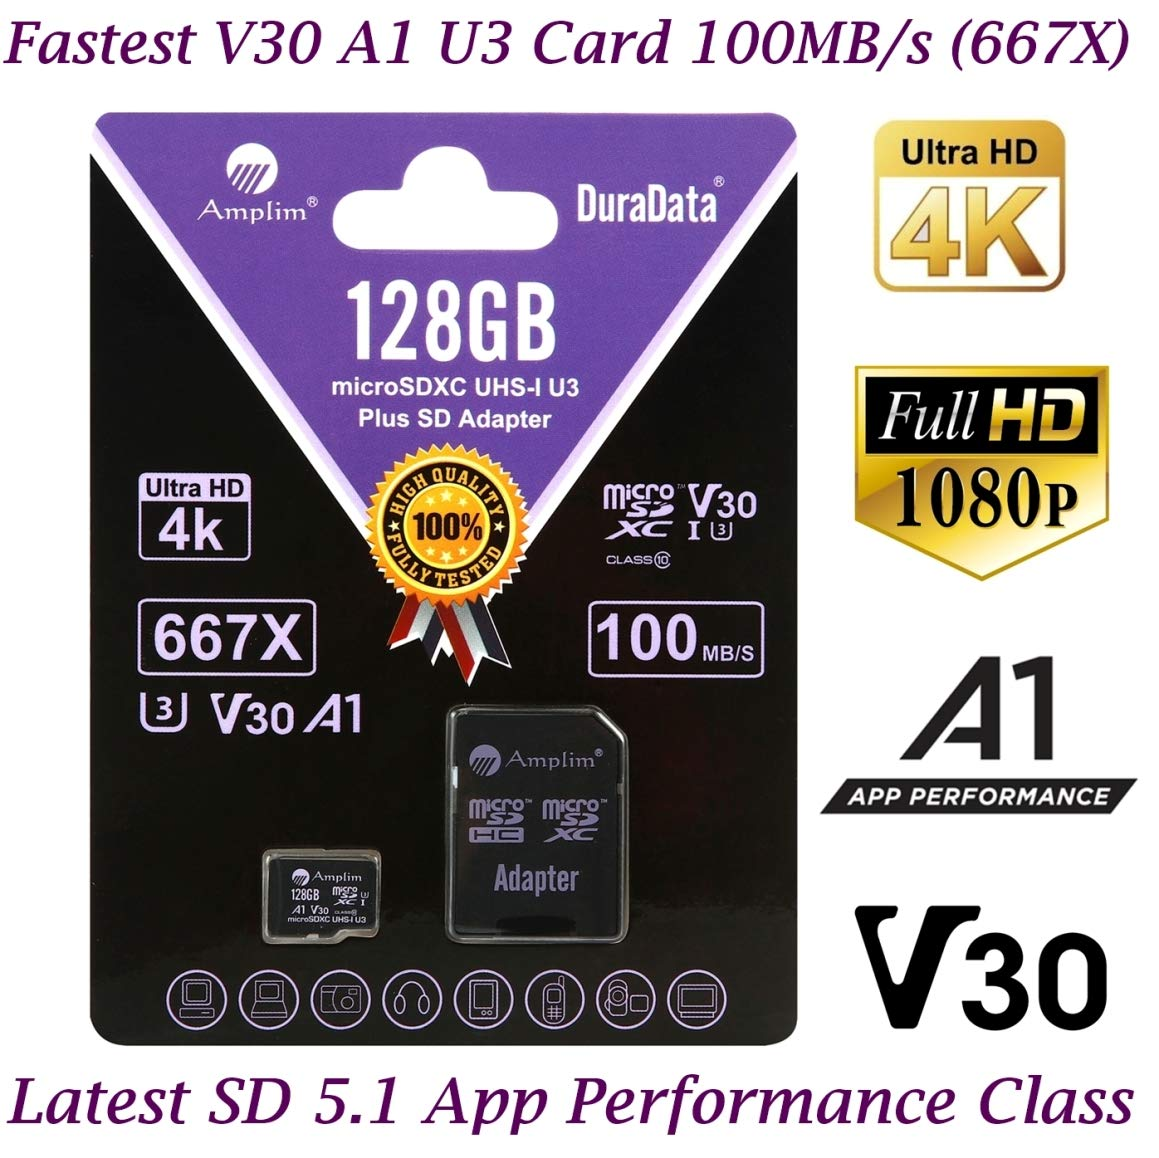 128GB Micro SD Card Plus Adapter Pack, Amplim 128 GB MicroSD SDXC Class 10 Pro U3 A1 V30 Extreme Speed 100MB/s UHS-I UHS-1 TF XC MicroSDXC Memory Card for Cell Phone, Nintendo, Galaxy, Fire, Gopro by Amplim